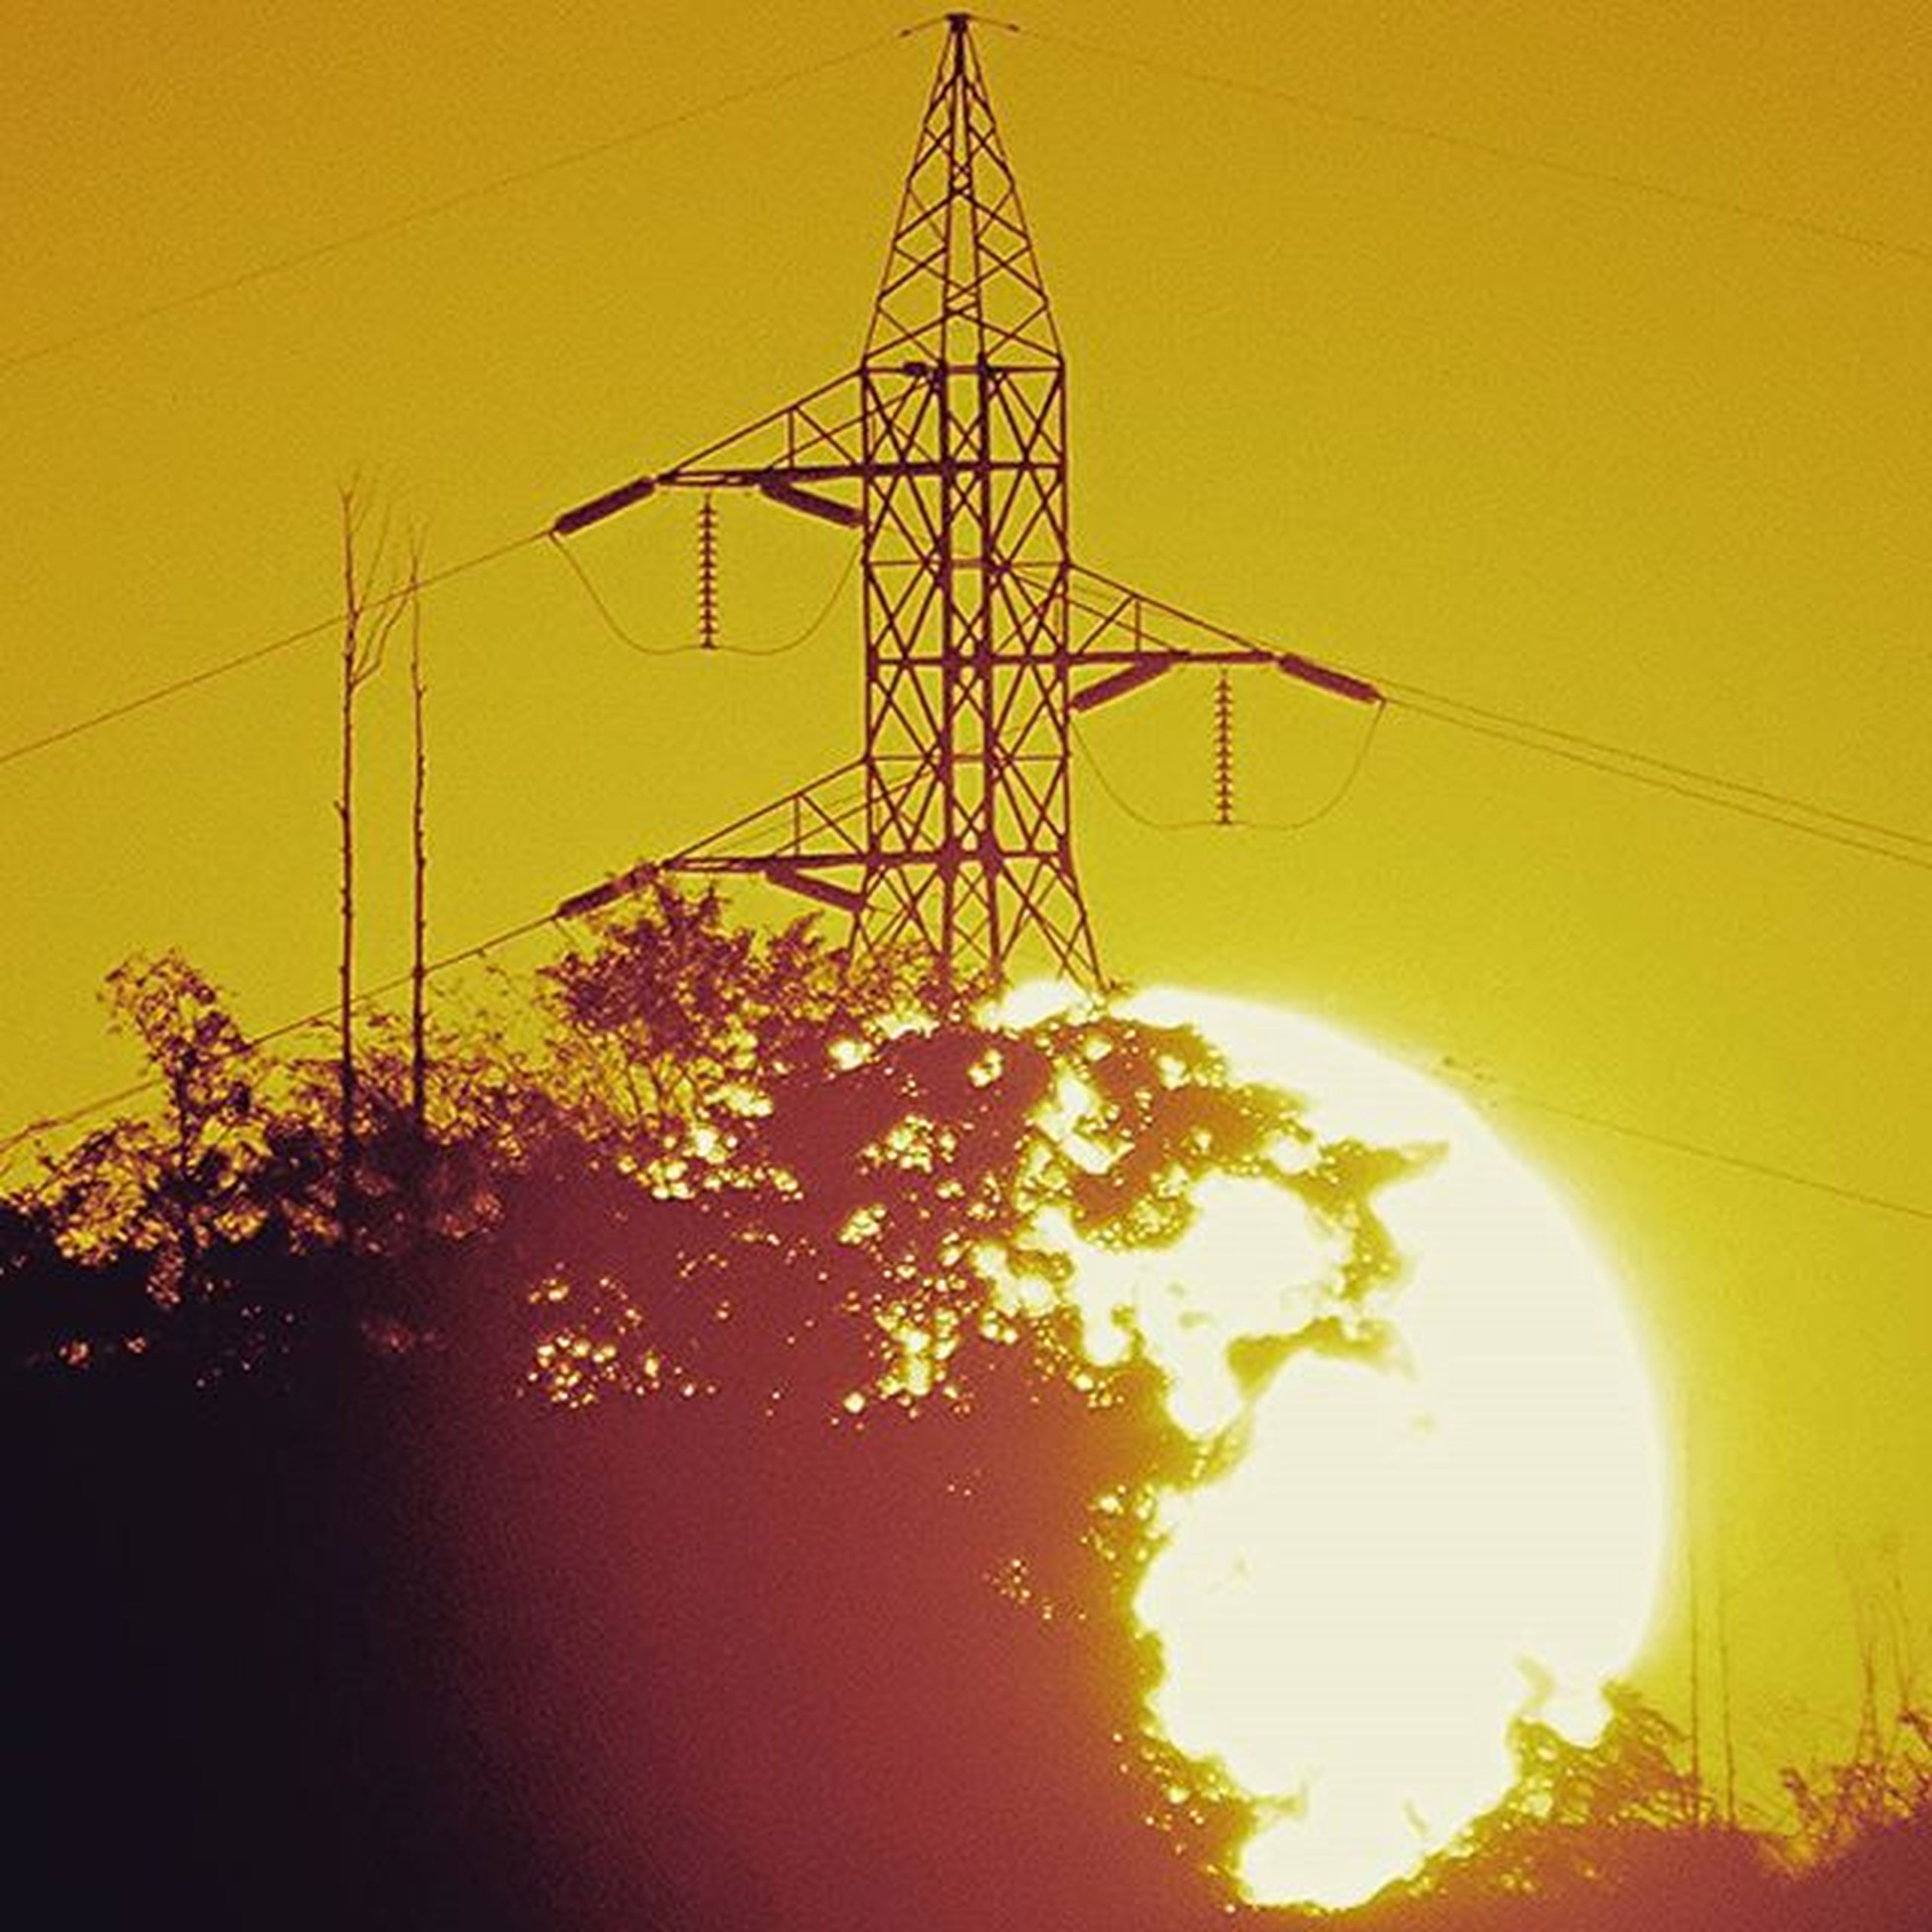 electricity, low angle view, sunset, power line, silhouette, power supply, tree, orange color, fuel and power generation, electricity pylon, cable, sky, technology, sun, yellow, lighting equipment, nature, branch, clear sky, connection